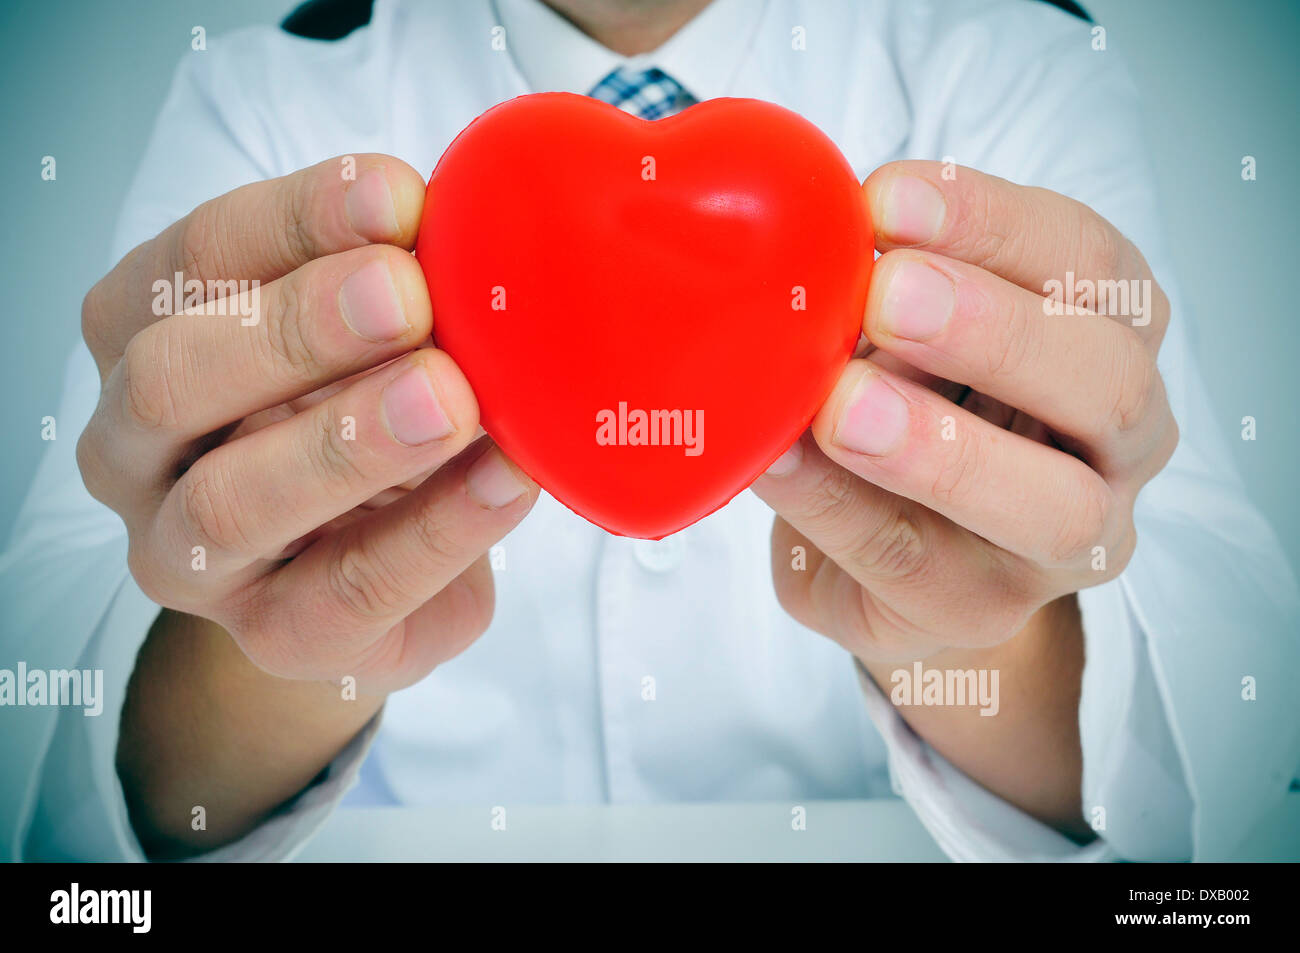 a man wearing a white coat sitting in a desk showing a red heart - Stock Image